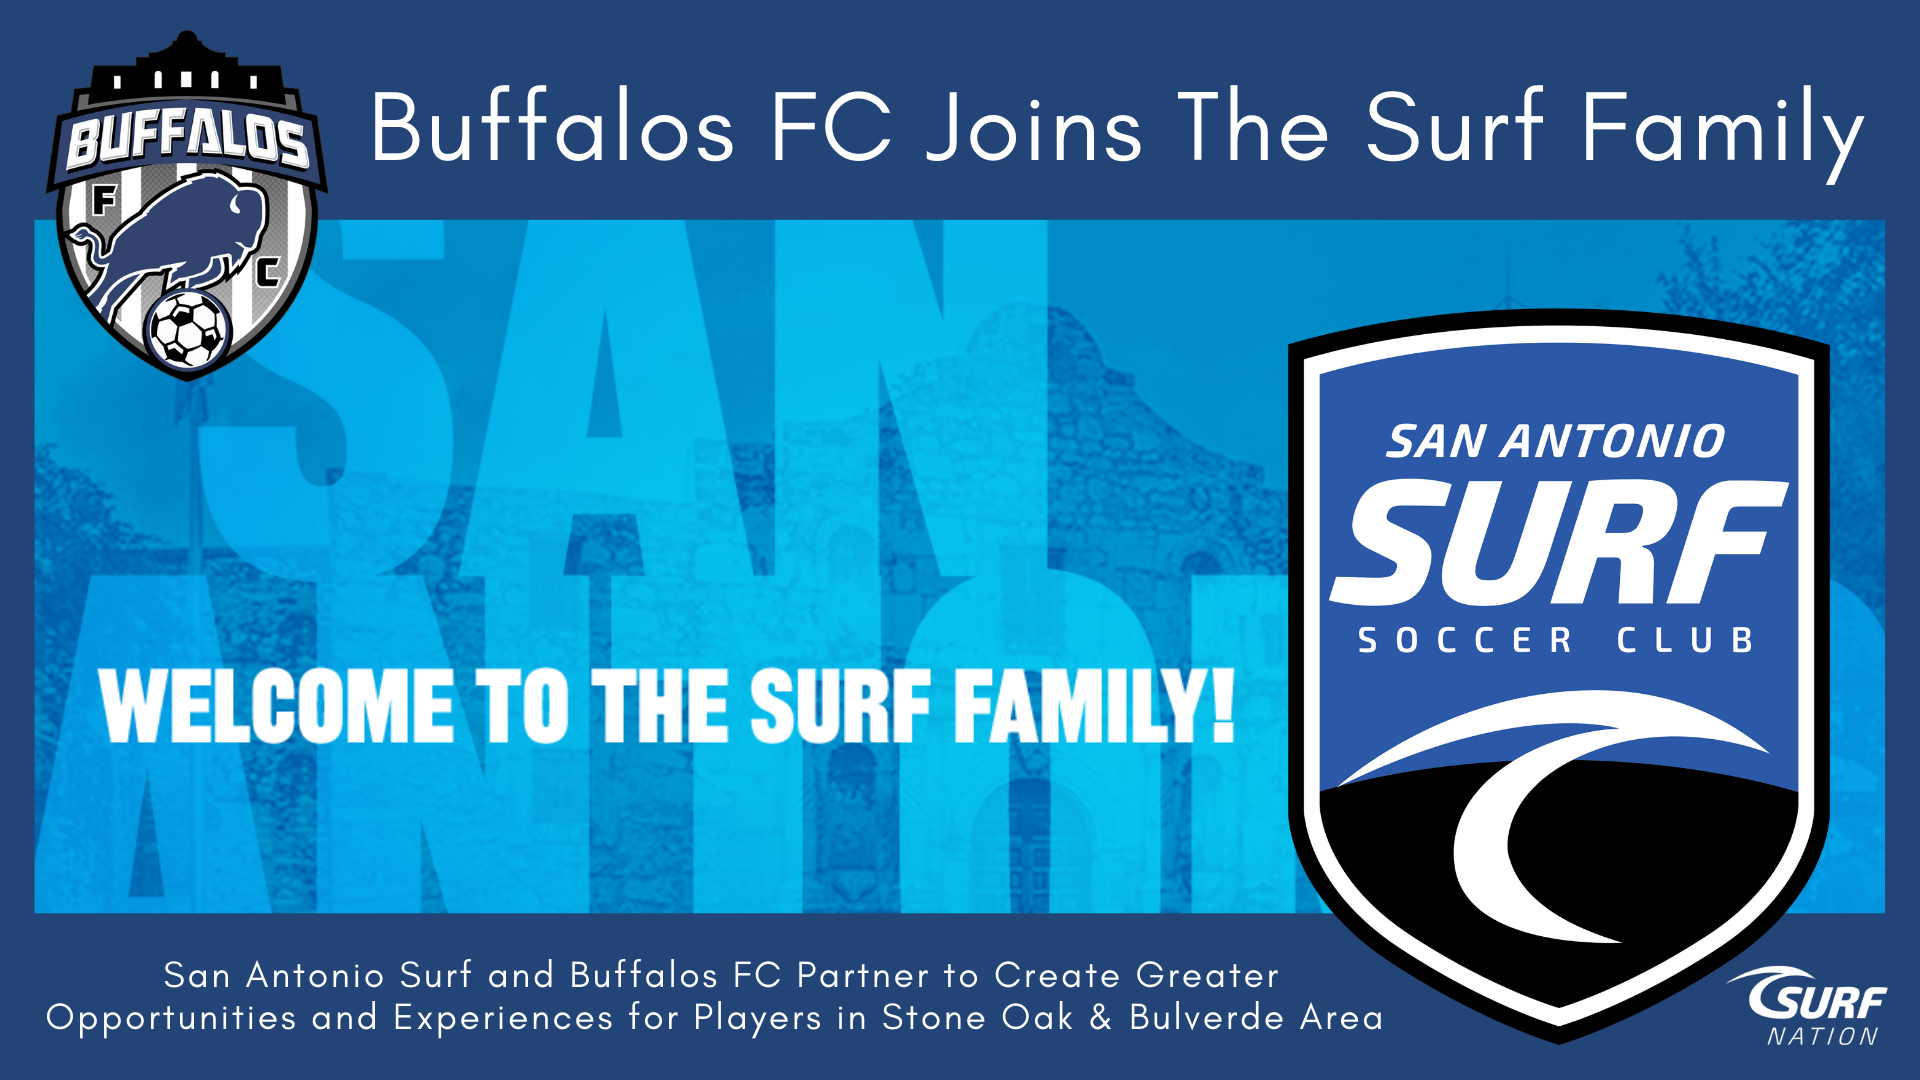 BFC JOINS SURF FAMILY